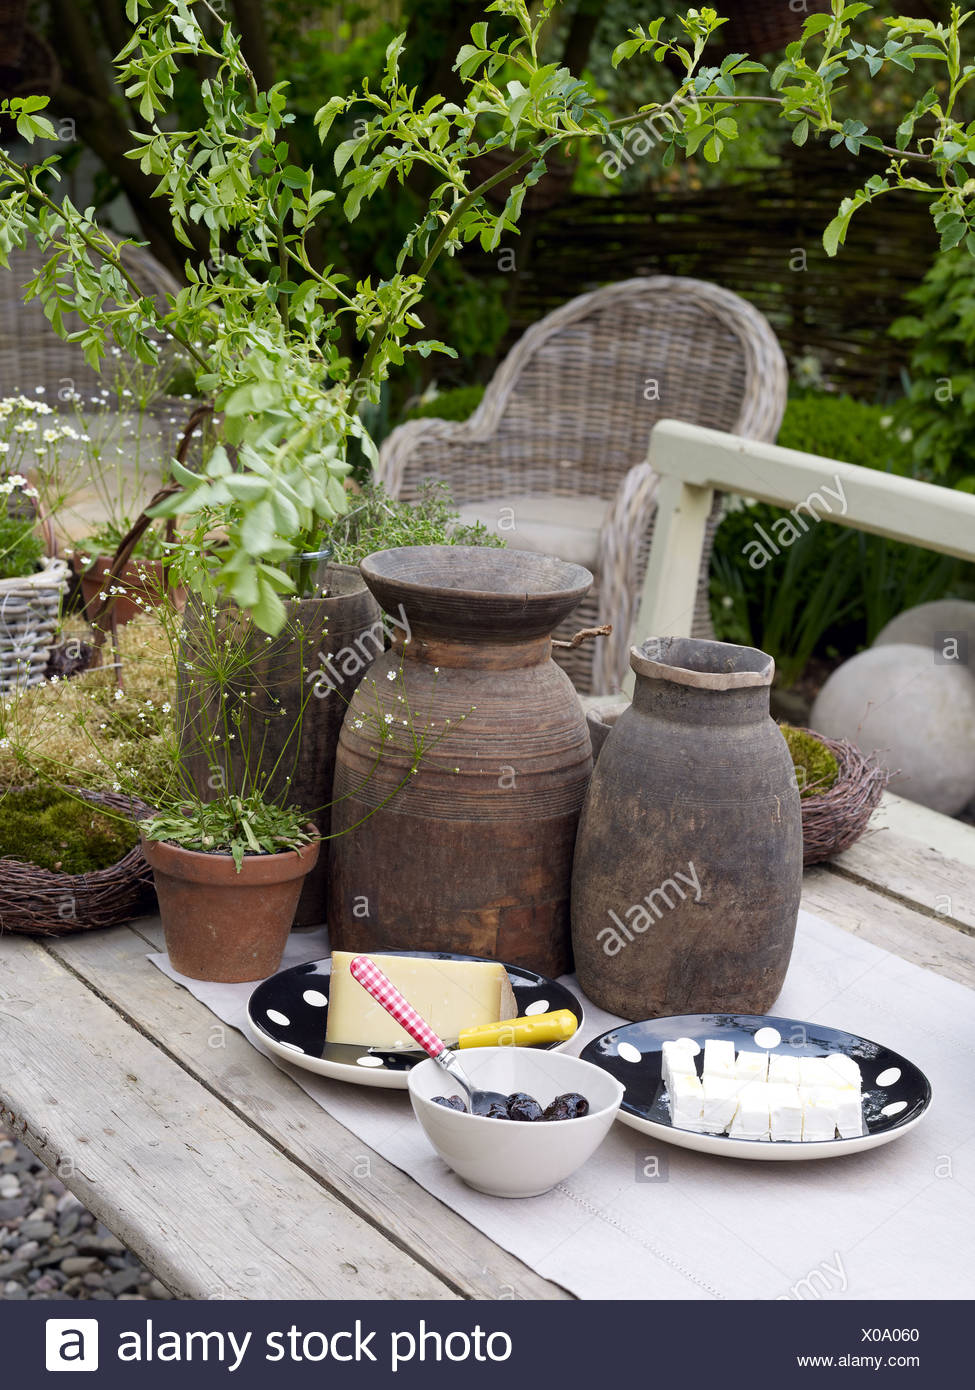 Still Life, Cheese And Olives, Surrounded By Decorative Garden Accessories  On An Old Wooden Table In A Romantic Garden